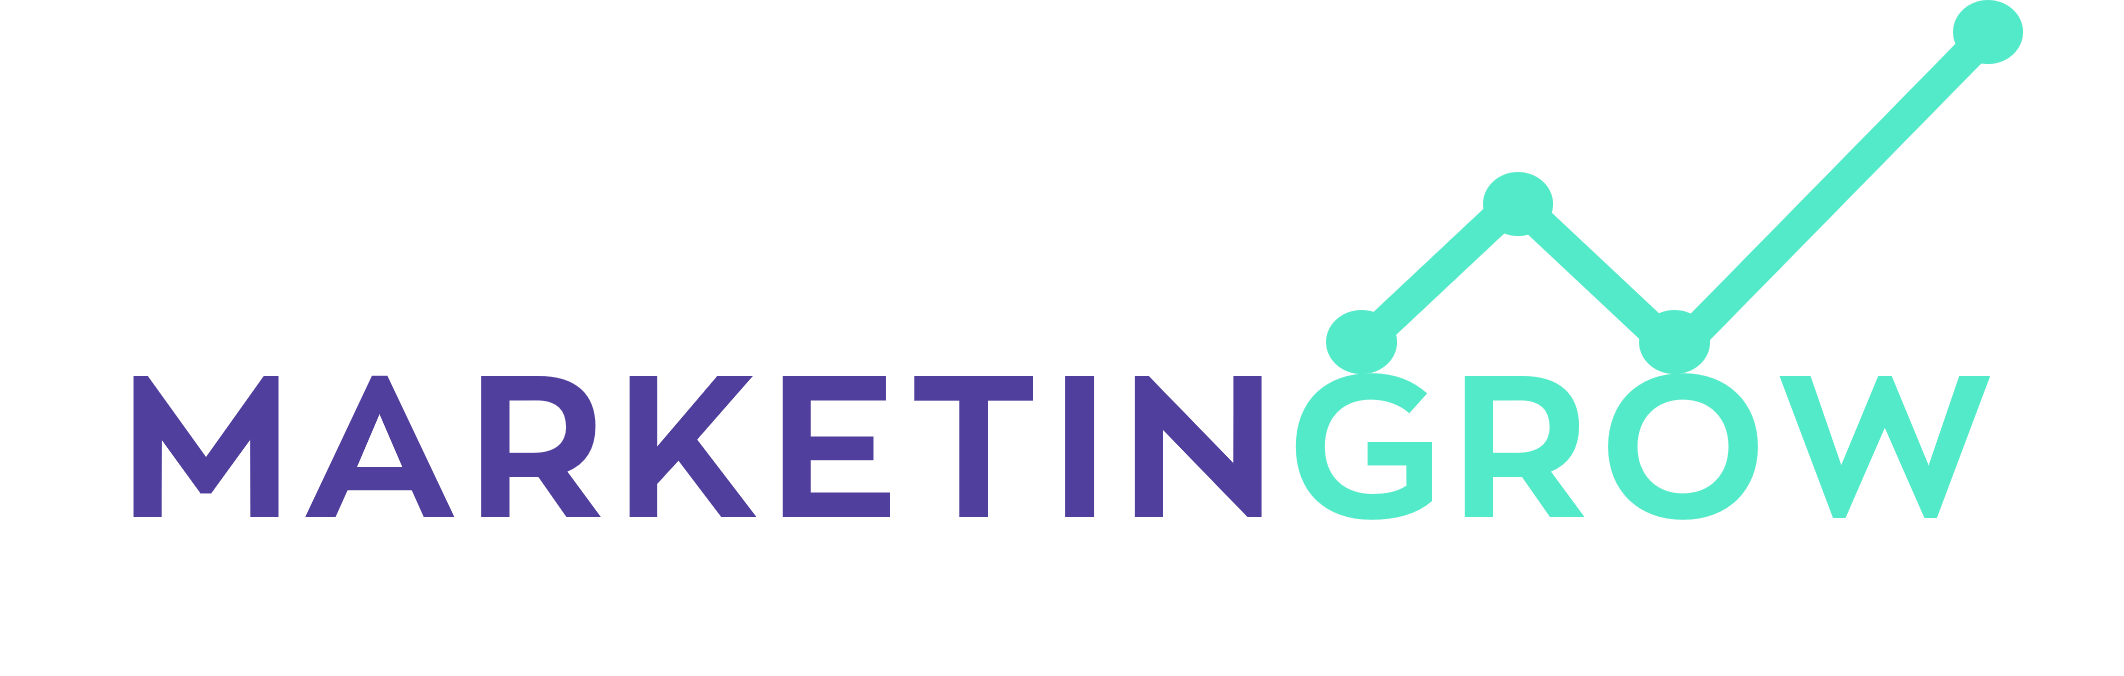 MarketinGROW Inc.